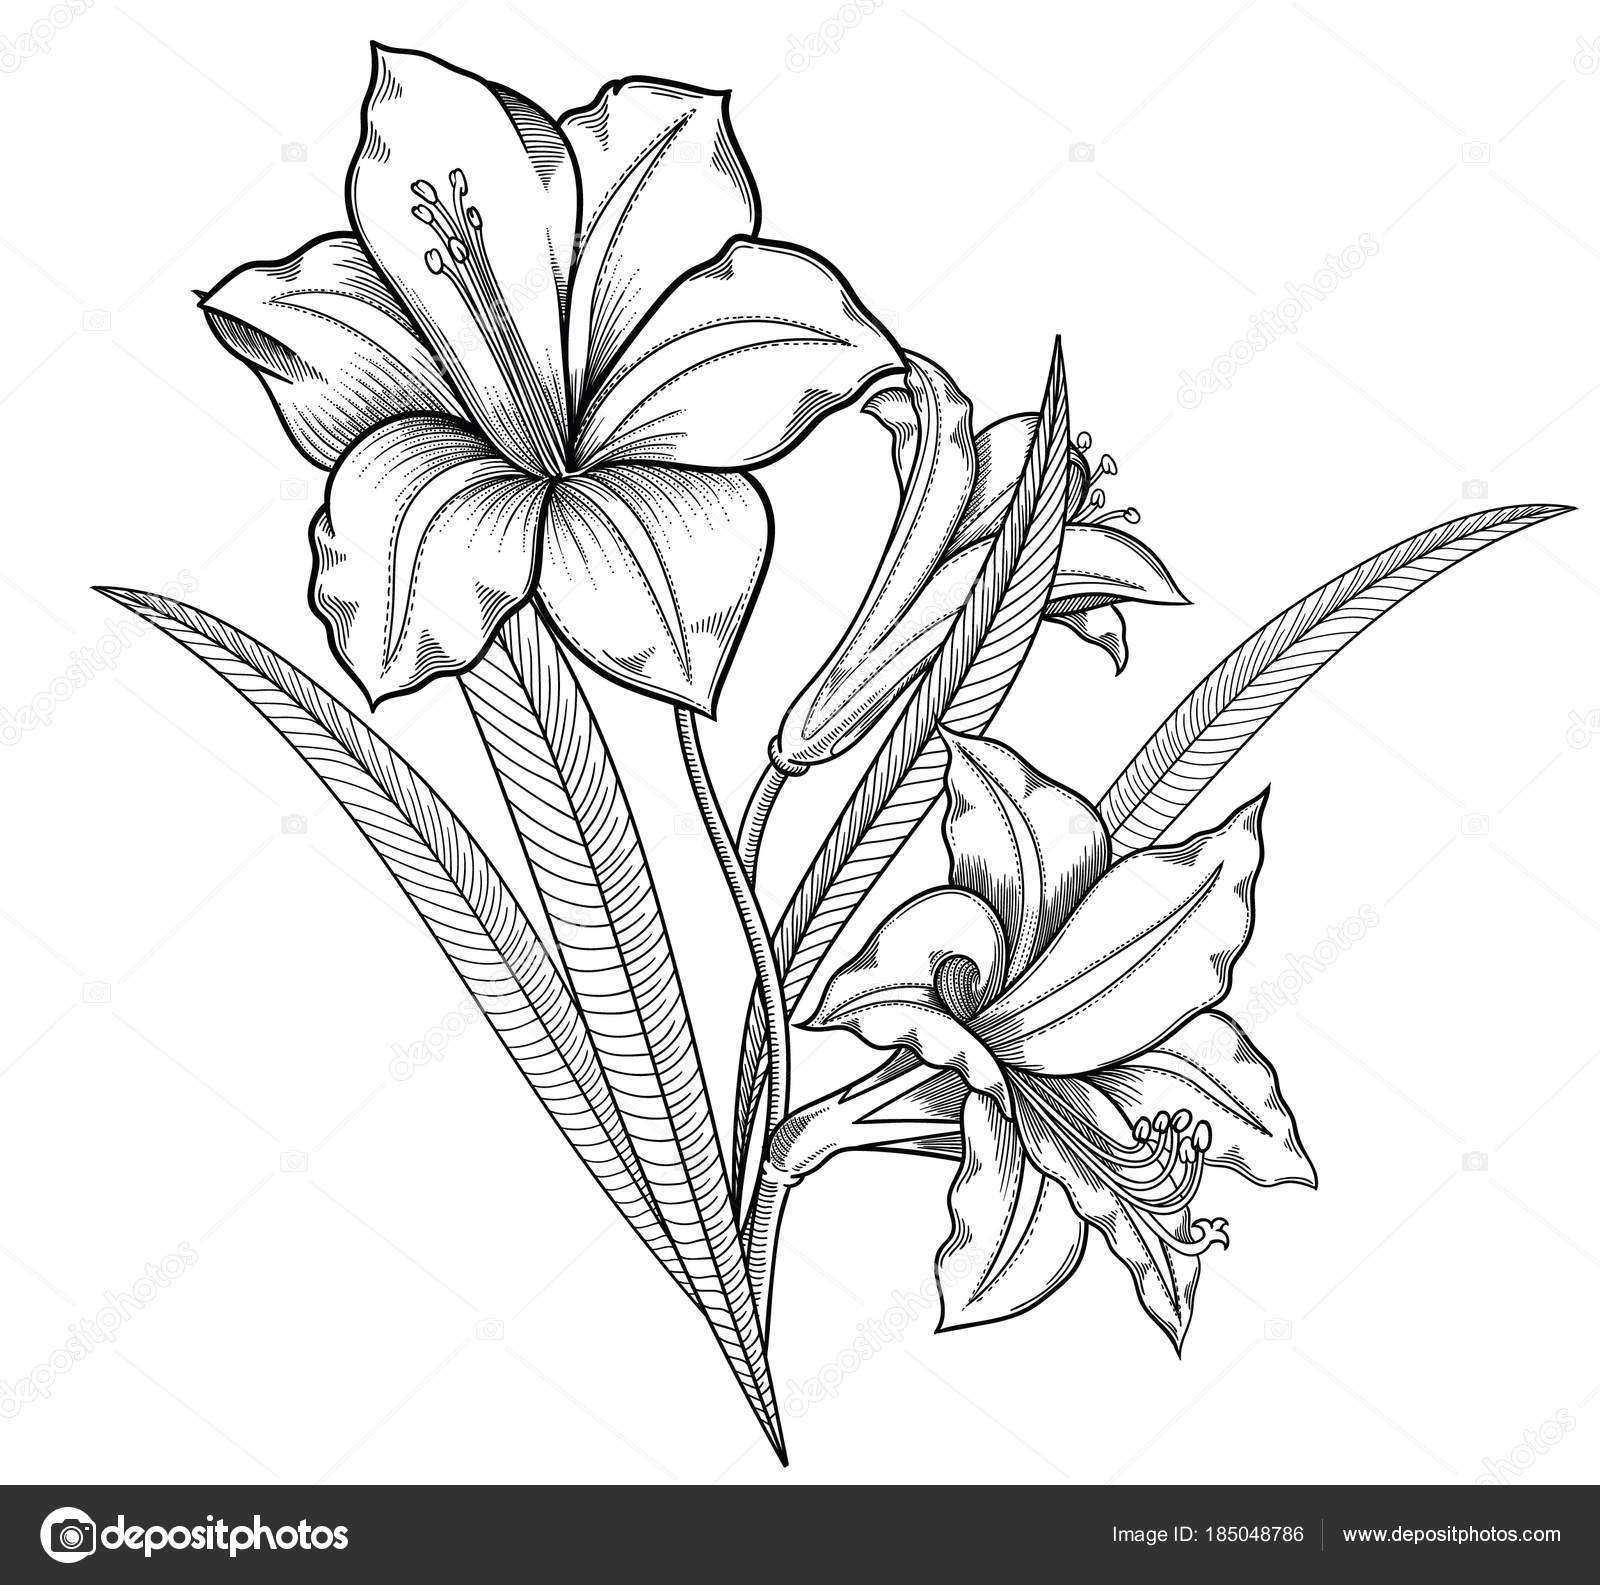 Blooming lily flowers detailed hand drawn vector illustration blooming lily flowers detailed hand drawn vector illustration romantic decorative flower drawing lies izmirmasajfo